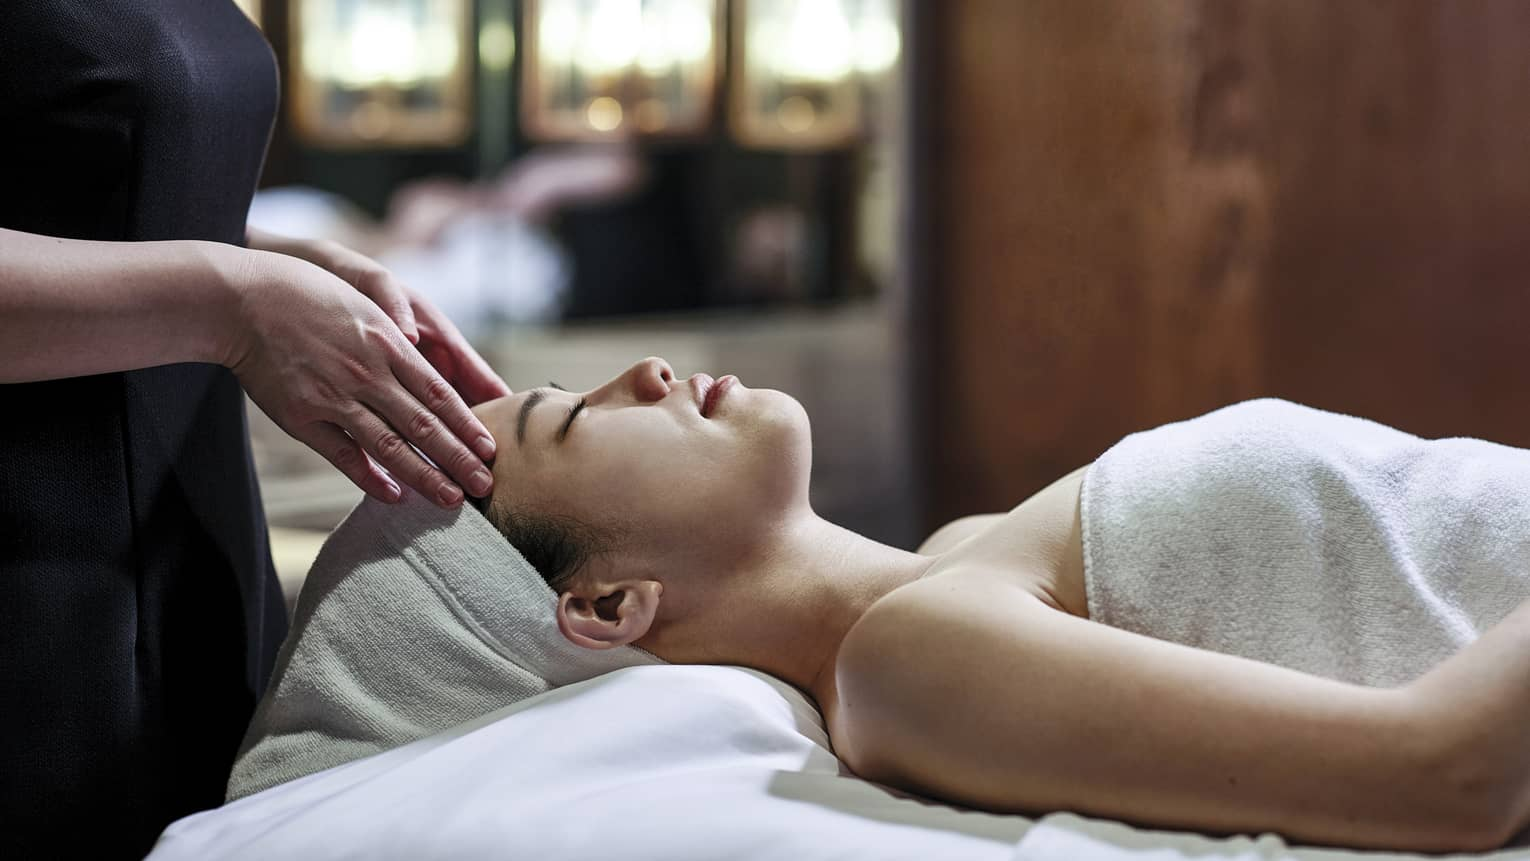 Woman getting a head massage during spa treatment, white towel over her and her head